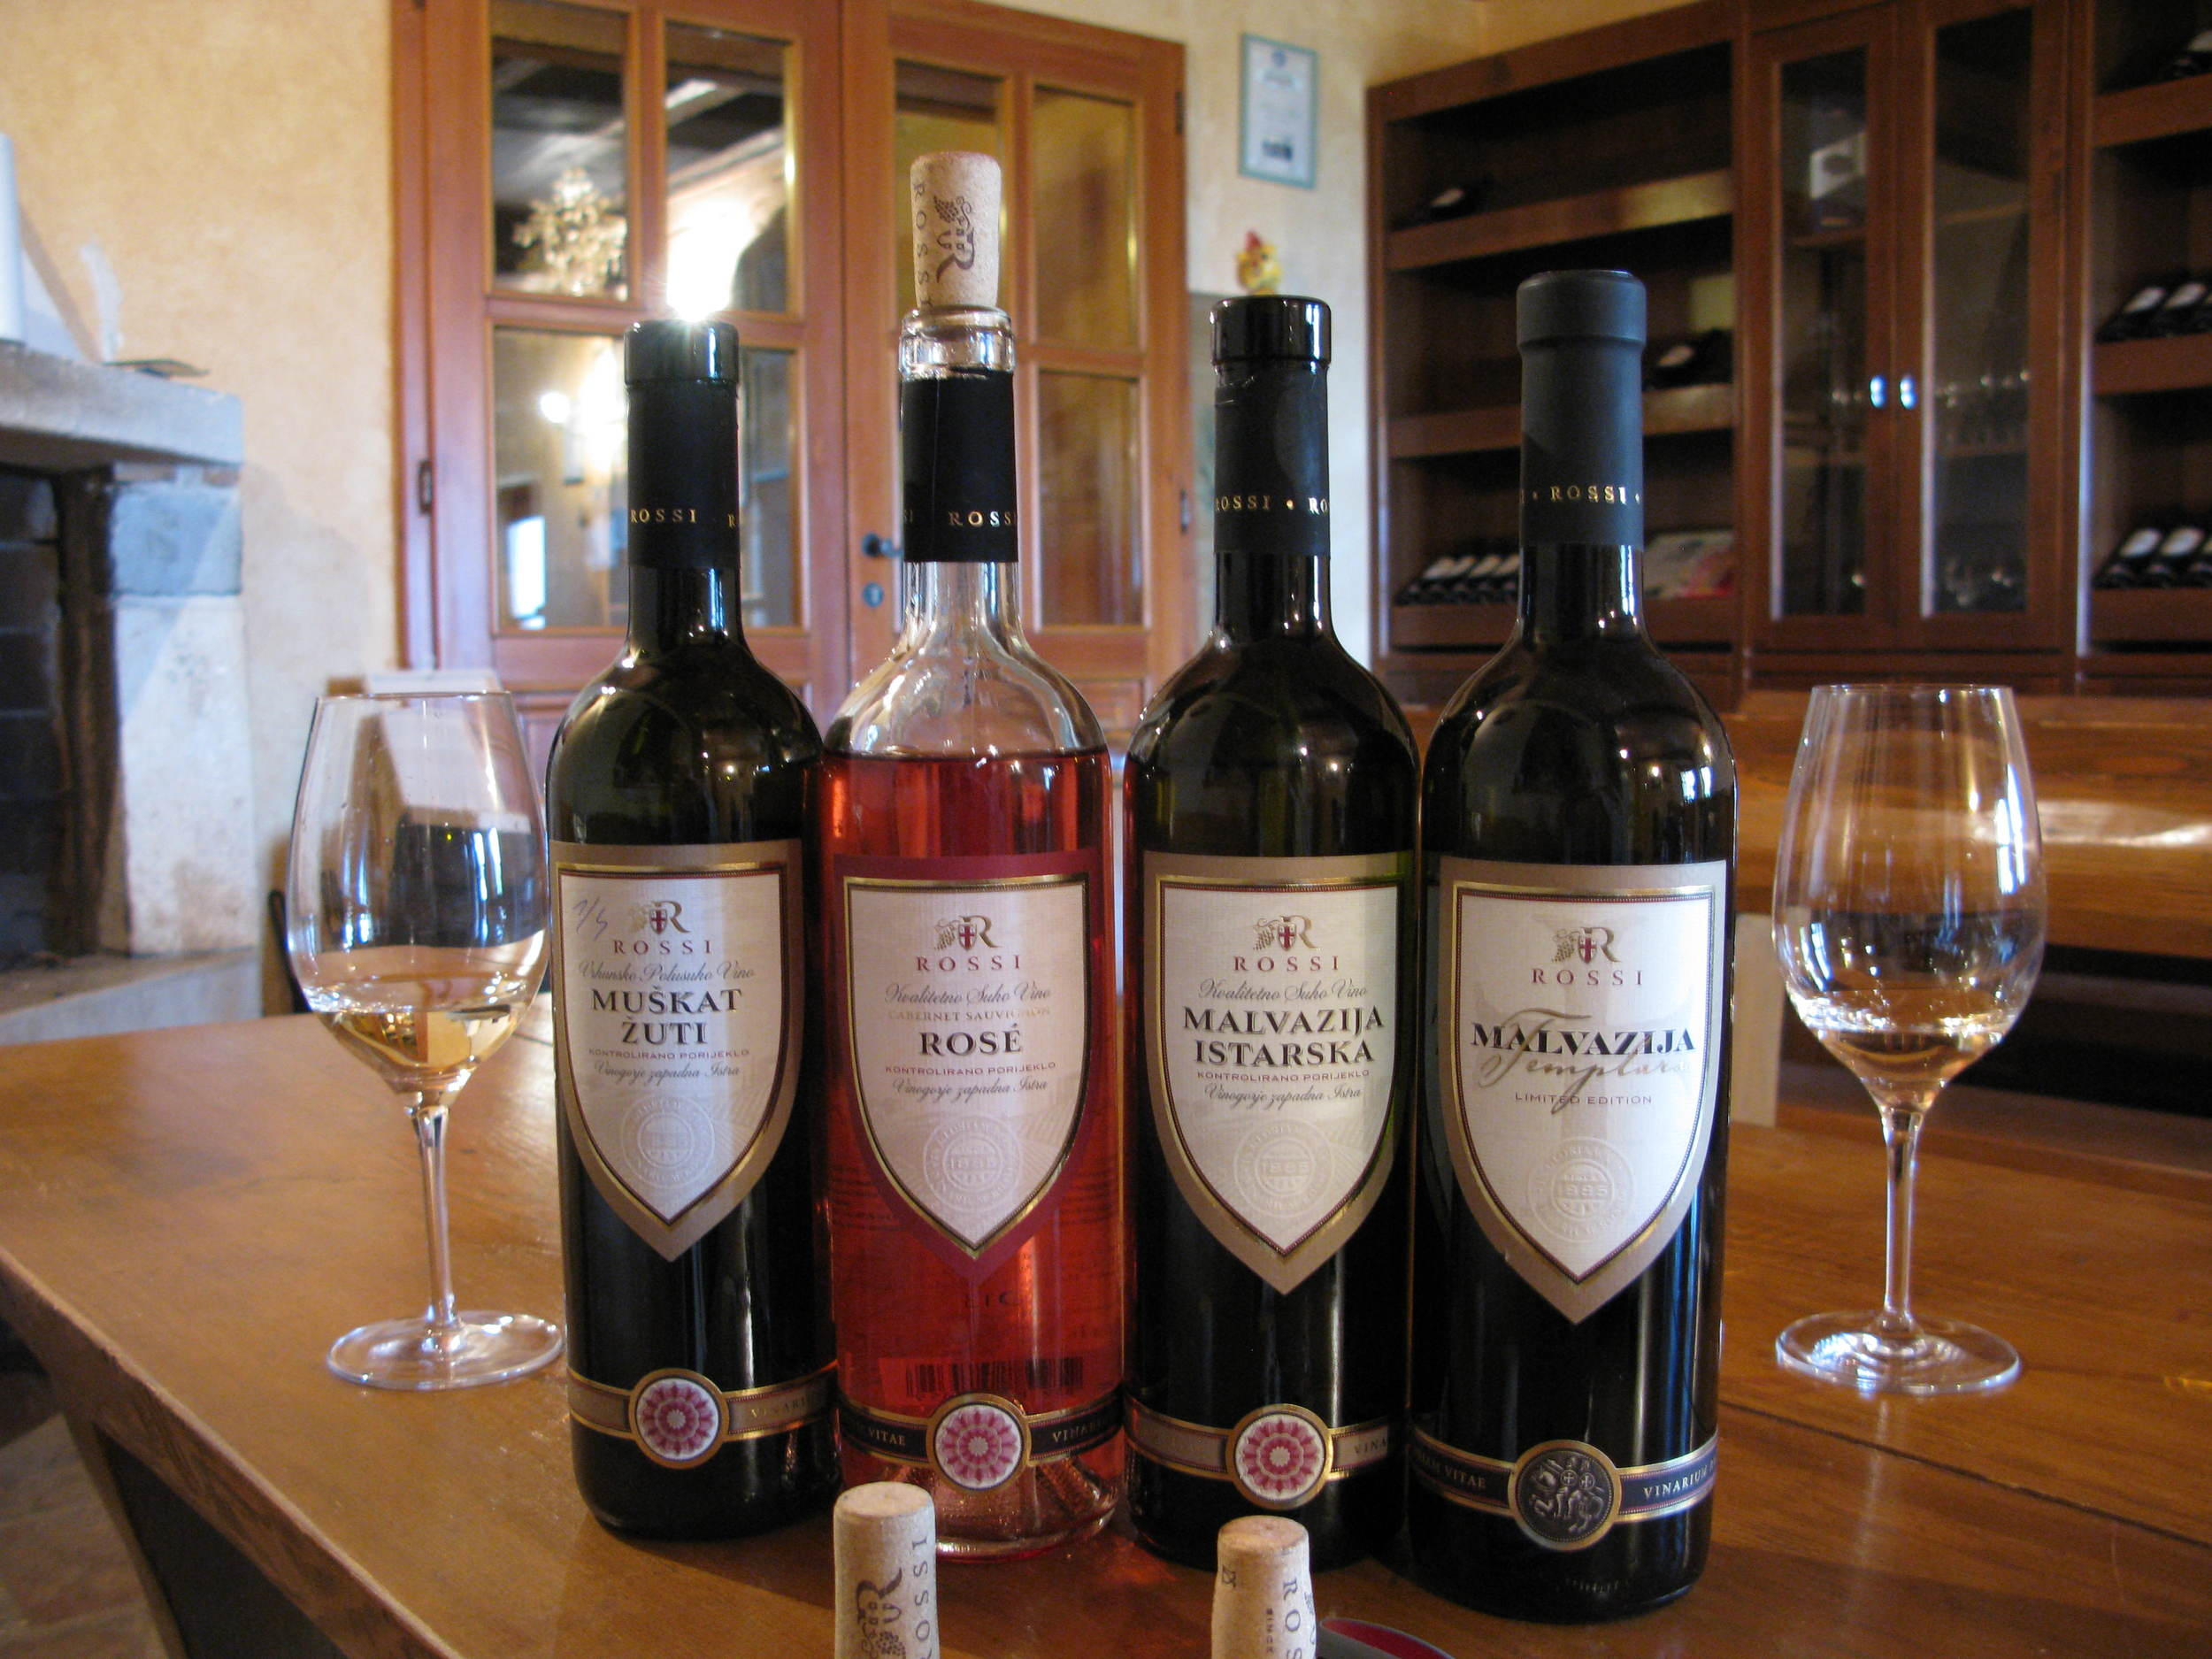 Tasting the Rossi wines